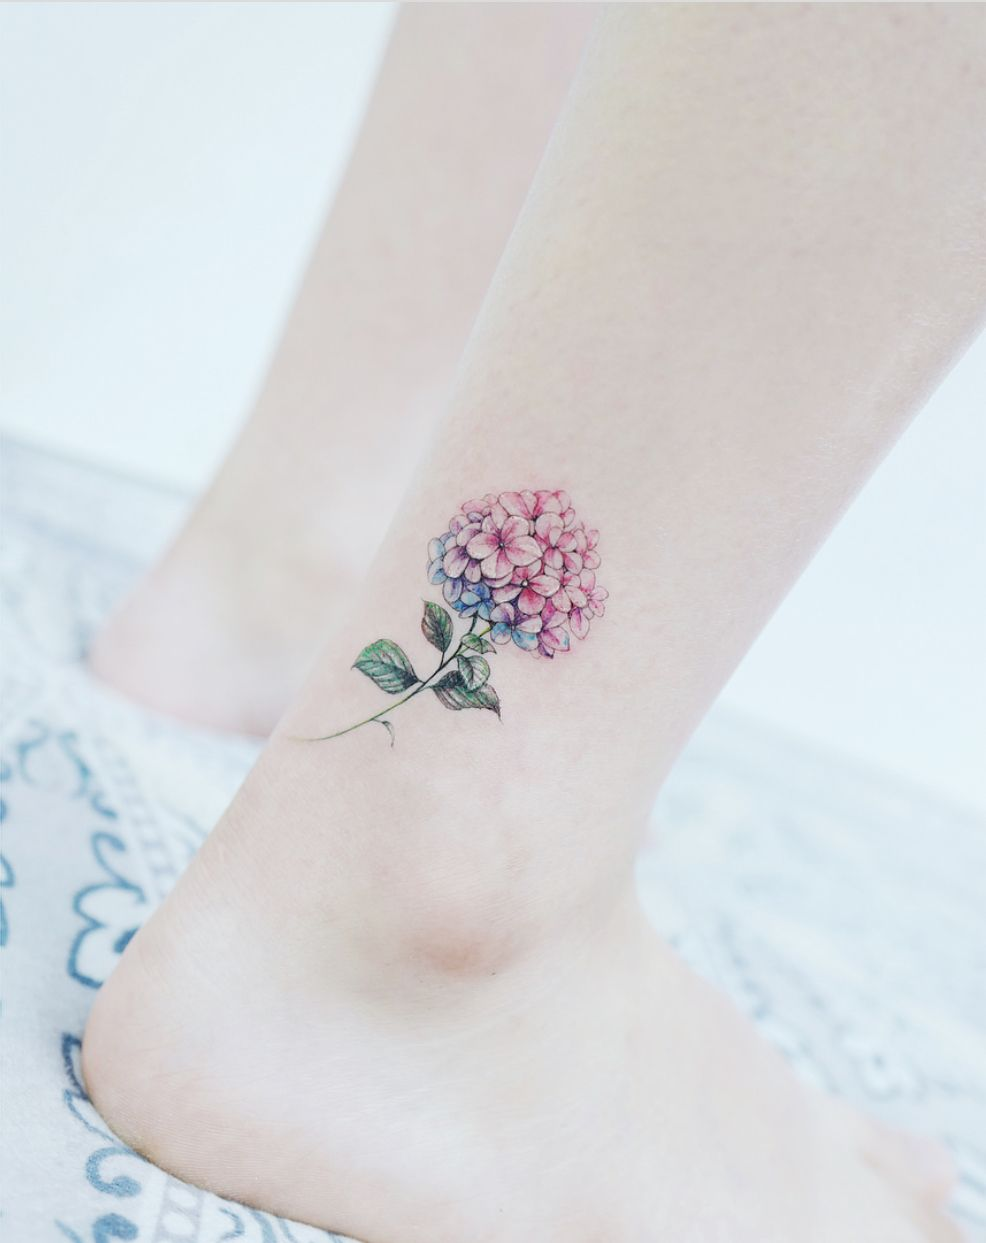 Hydrangea Ankle Tattoo Ankle Tattoo Small Tattoos Hydrangea Tattoo